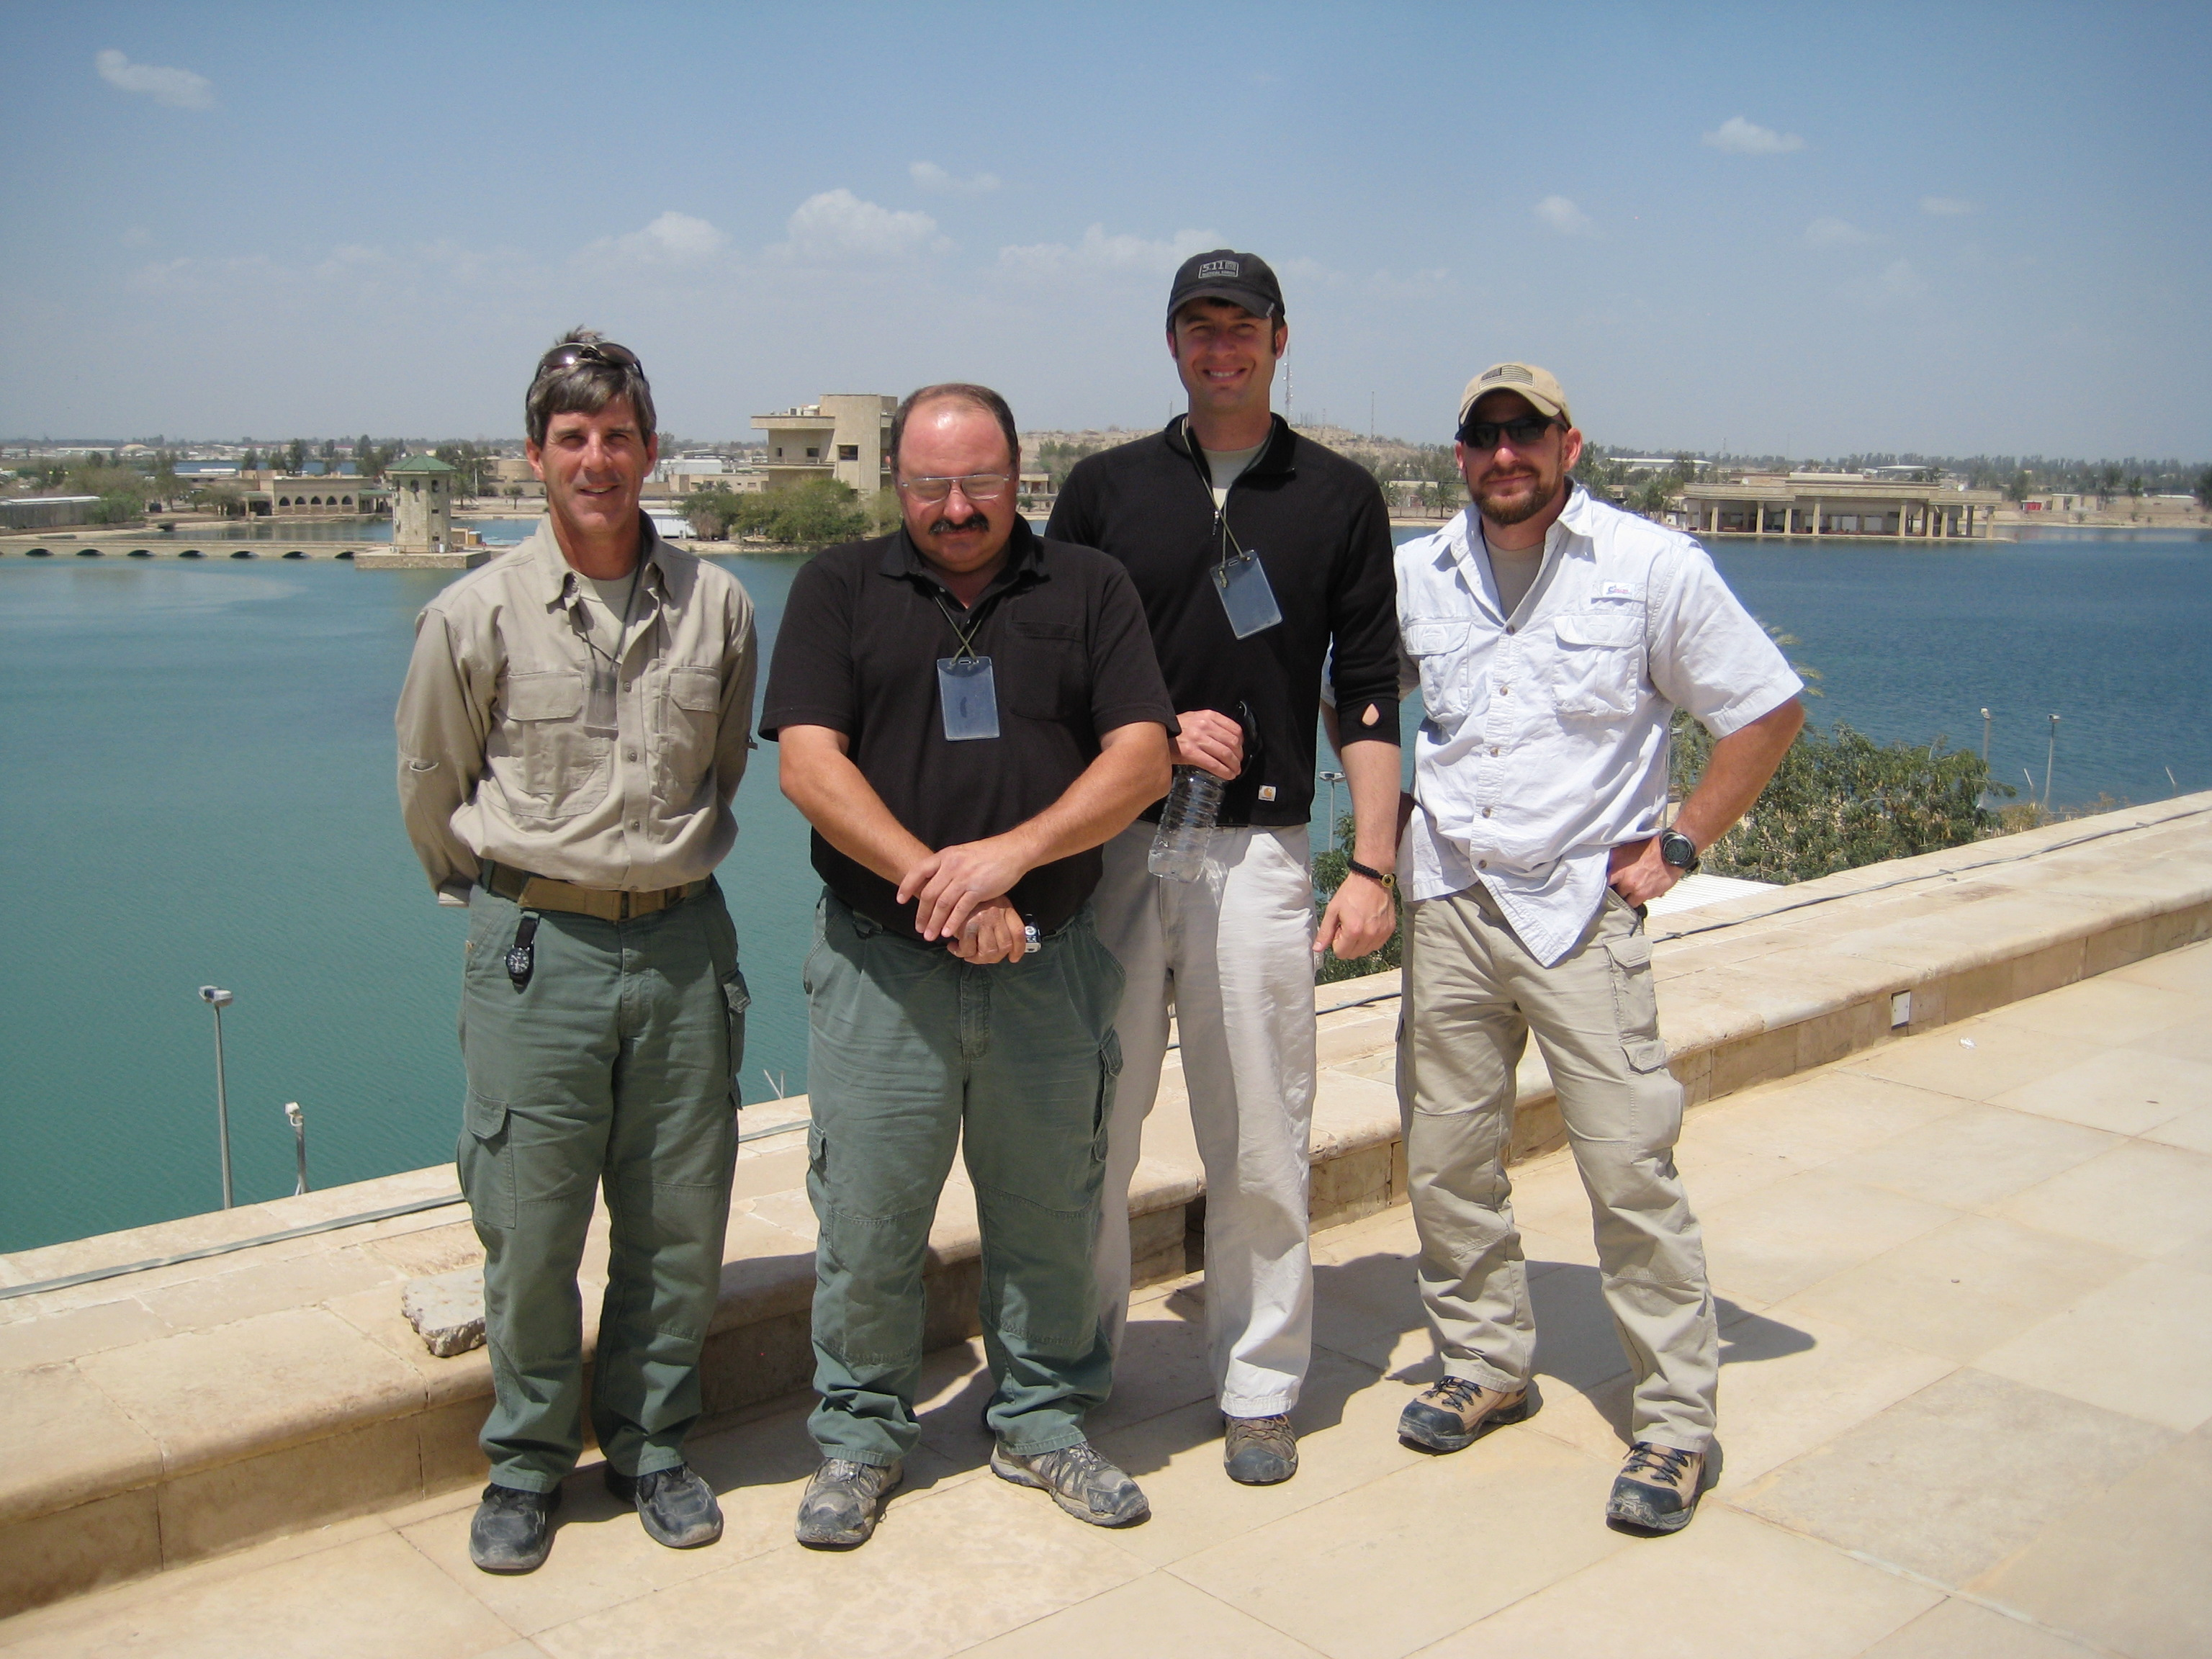 Driving instructors (from L to R) Peter Zekert; Don Barrack (lead instructor); Shawn Lewis; and Scott Haines Baghdad Iraq March 2009 & High Threat Driver Training